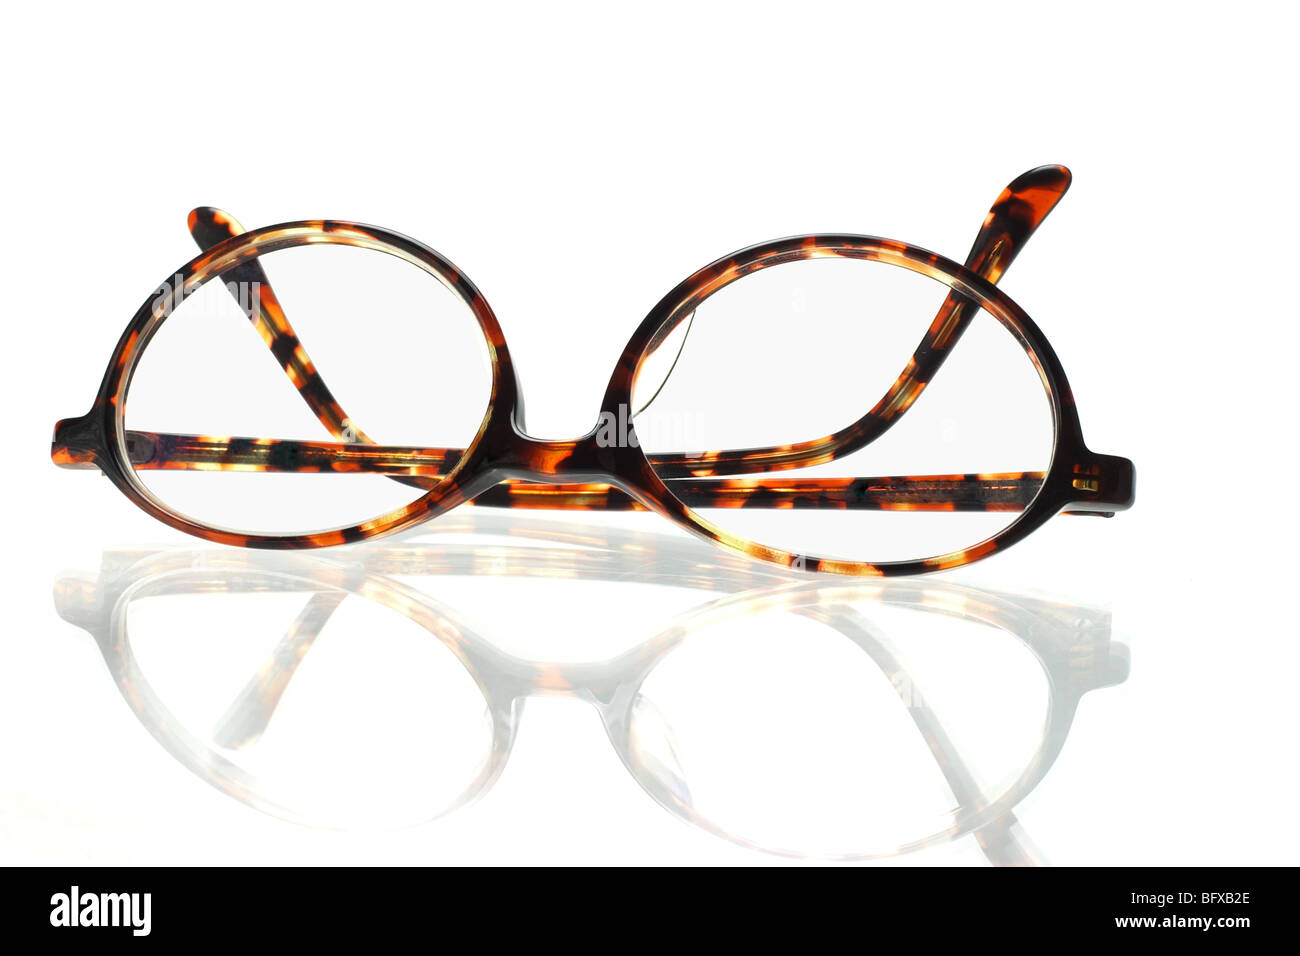 Old fashion plastic frame eyeglasses on white background - Stock Image